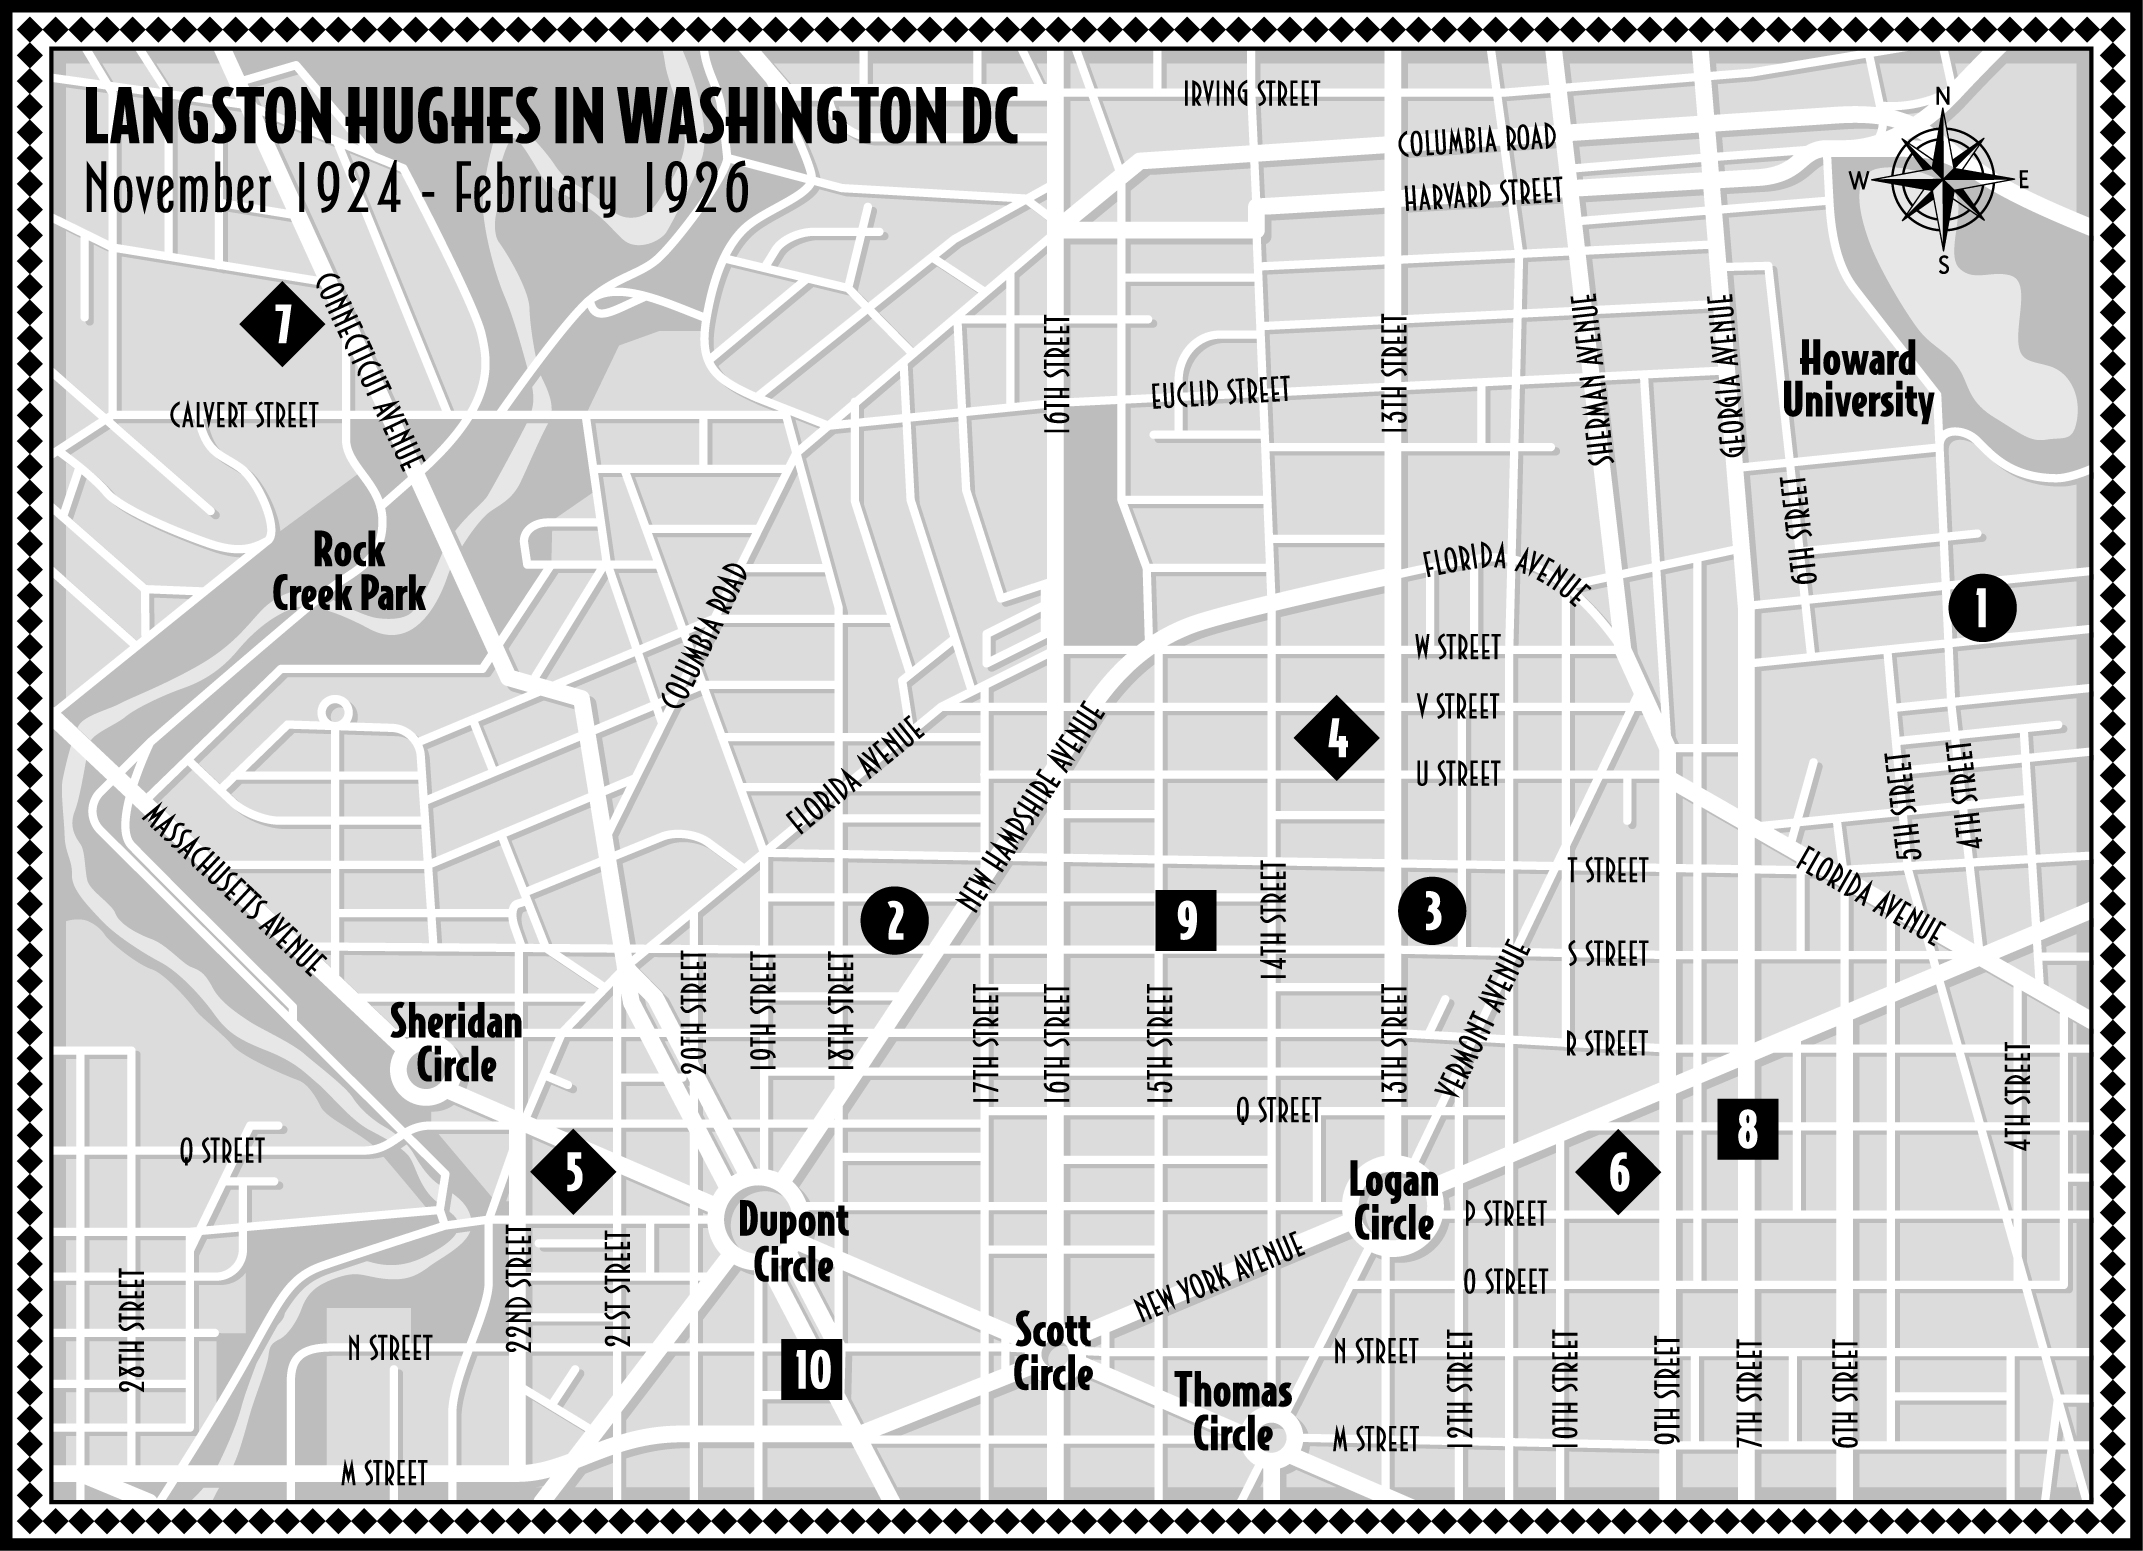 Langston University Campus Map.Kim Roberts On Langston Hughes